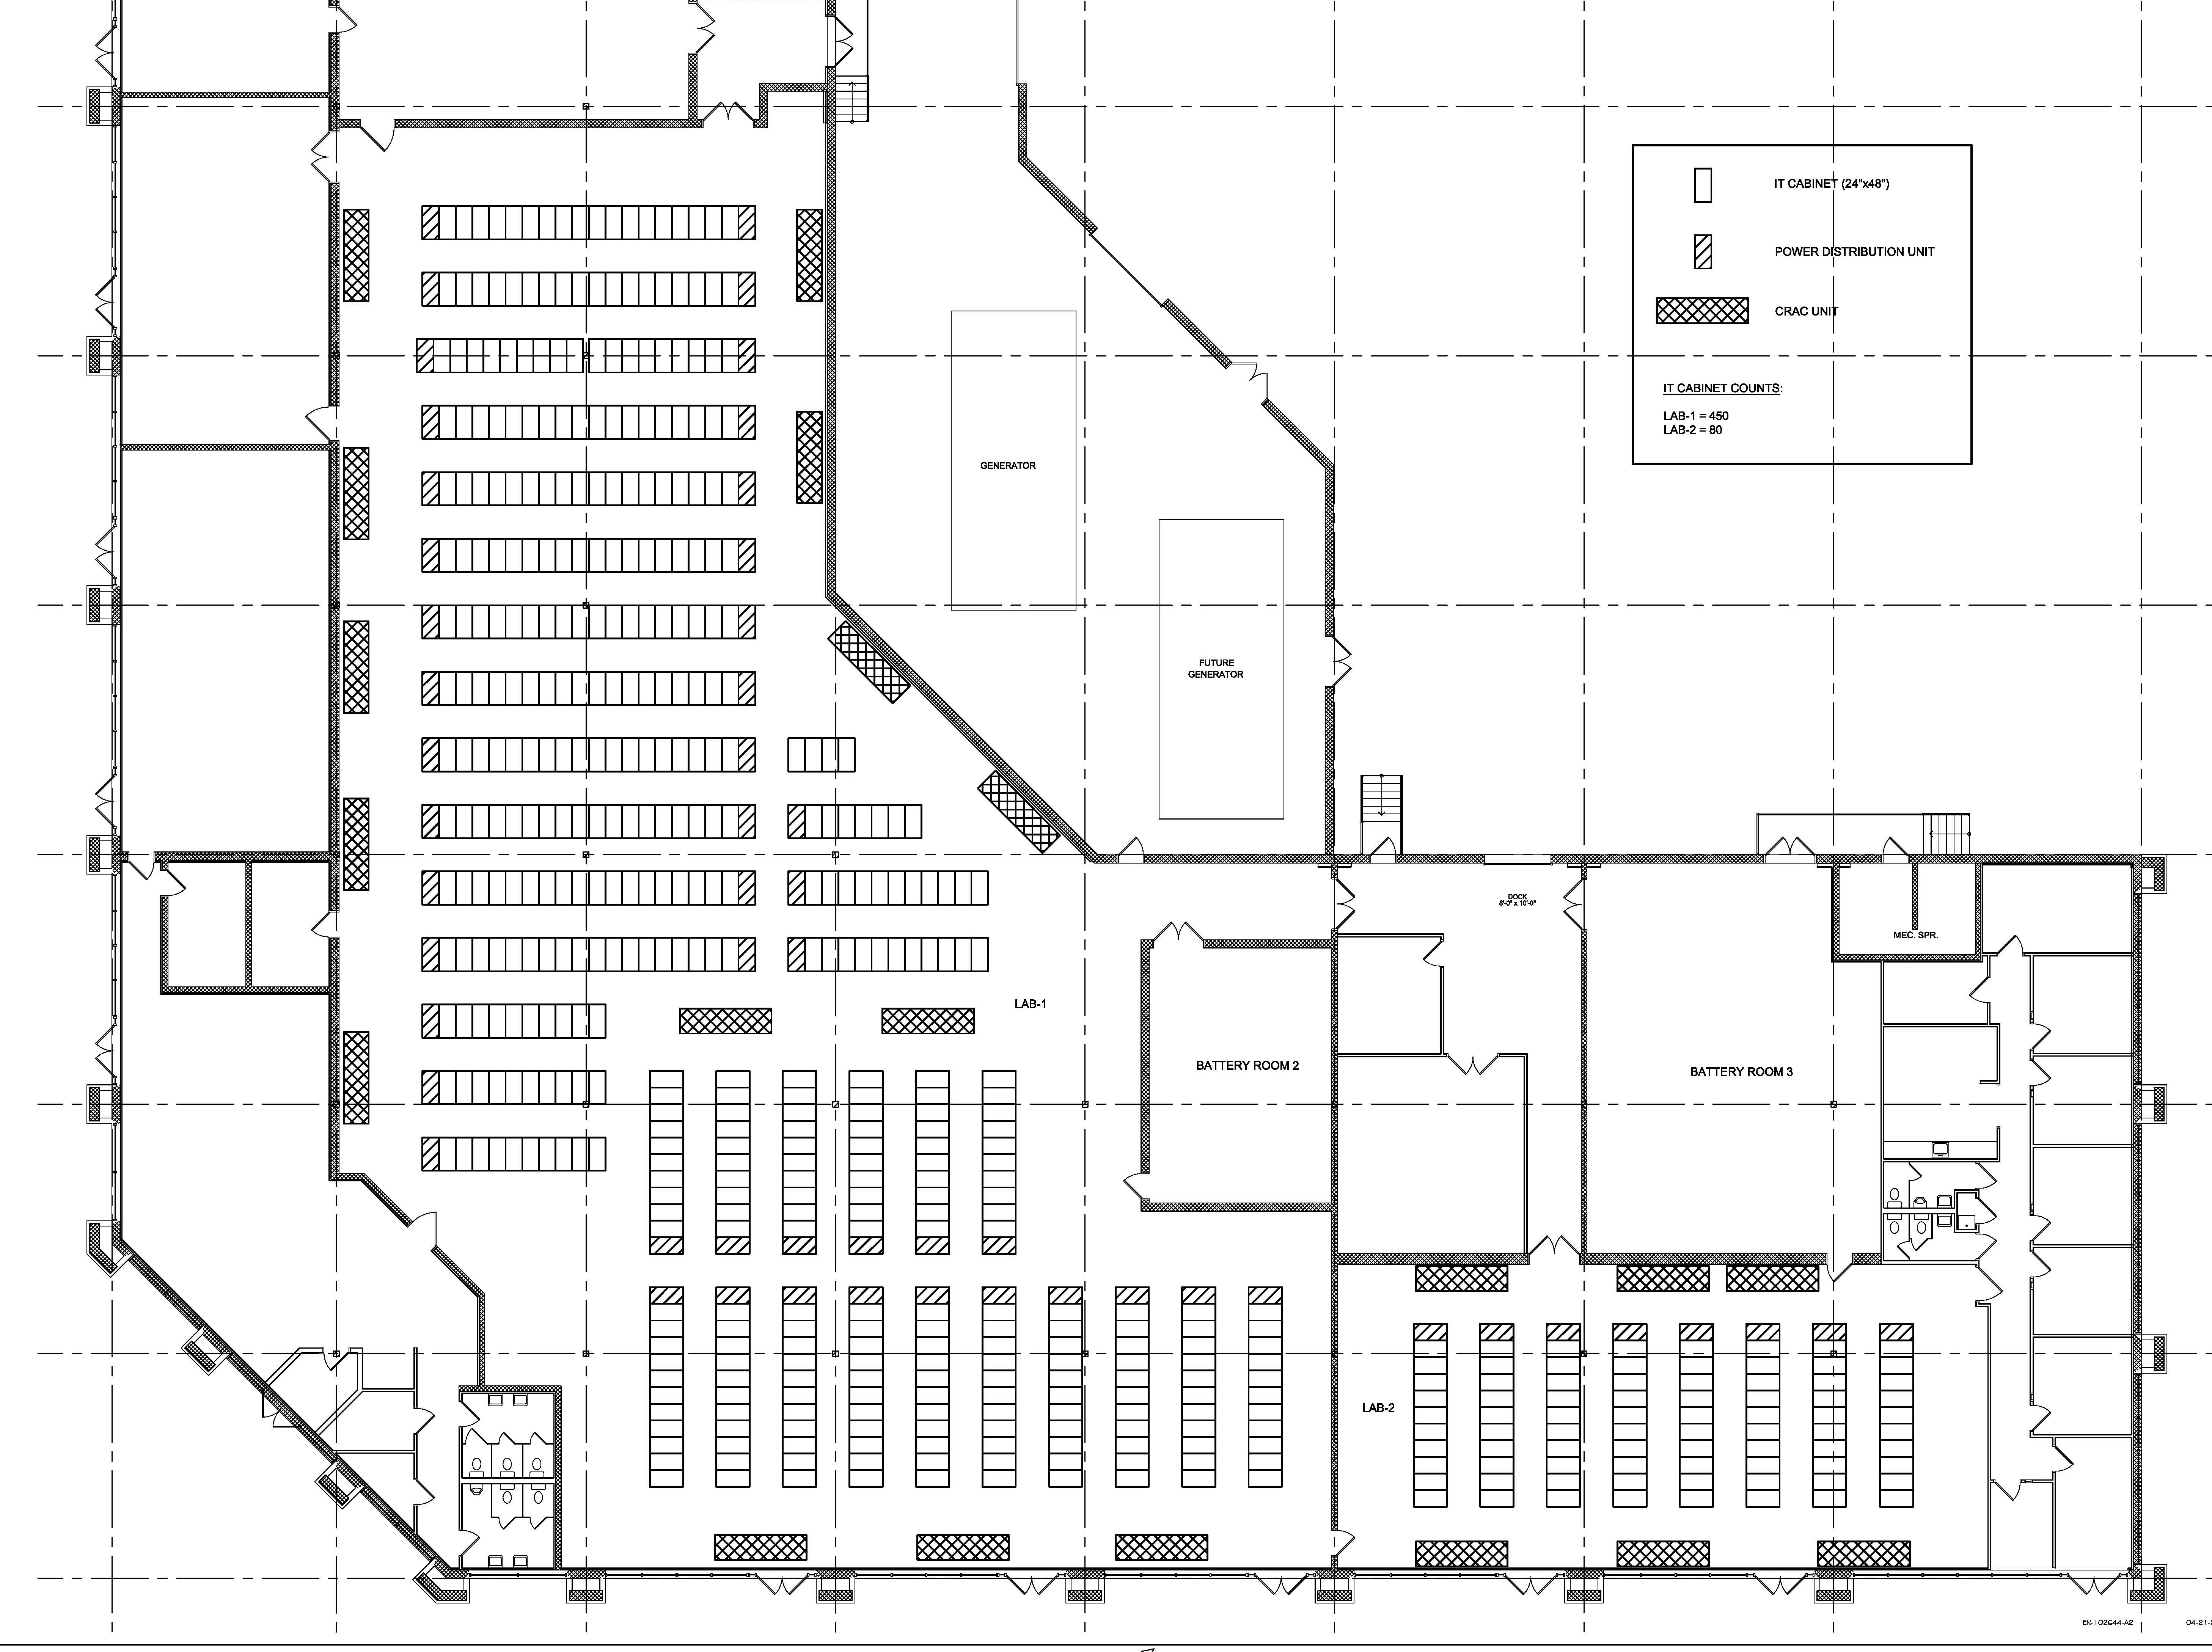 Electronic Environments Assessment Services Used To Evaluate Merritt S Data Center Facility In